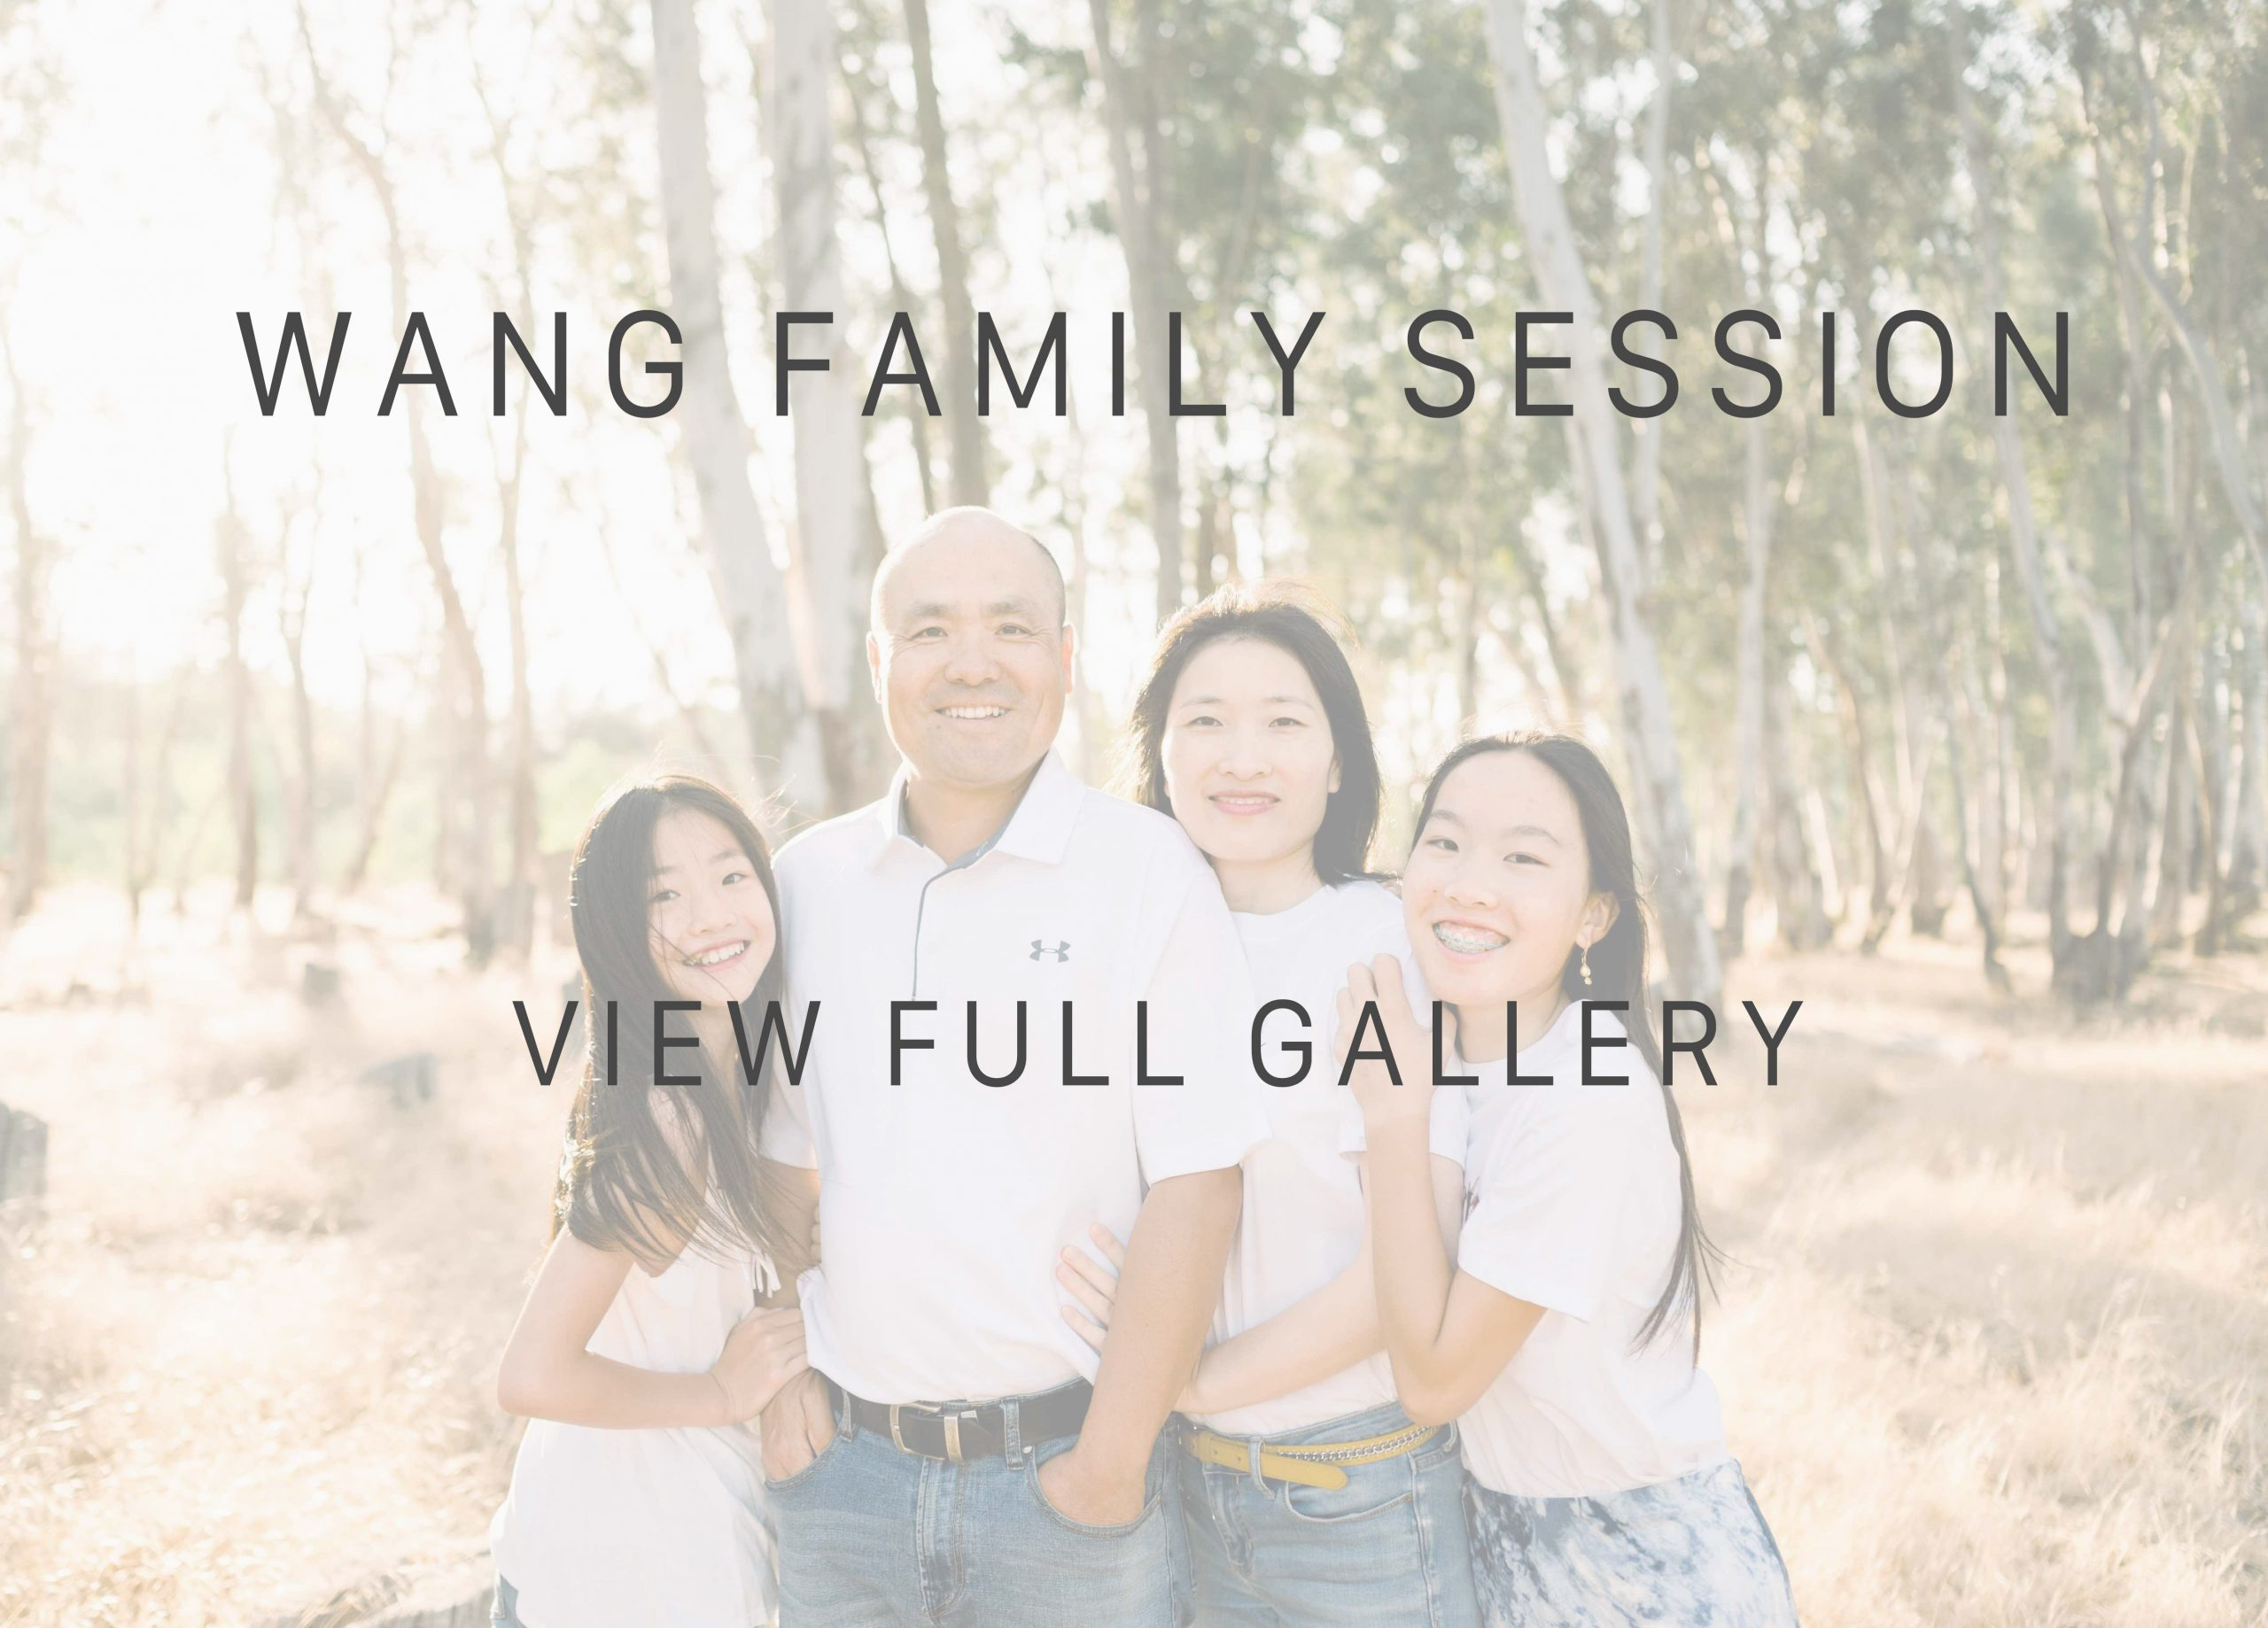 Family photo session in Temecula California done by Sharisse Rowan Photography